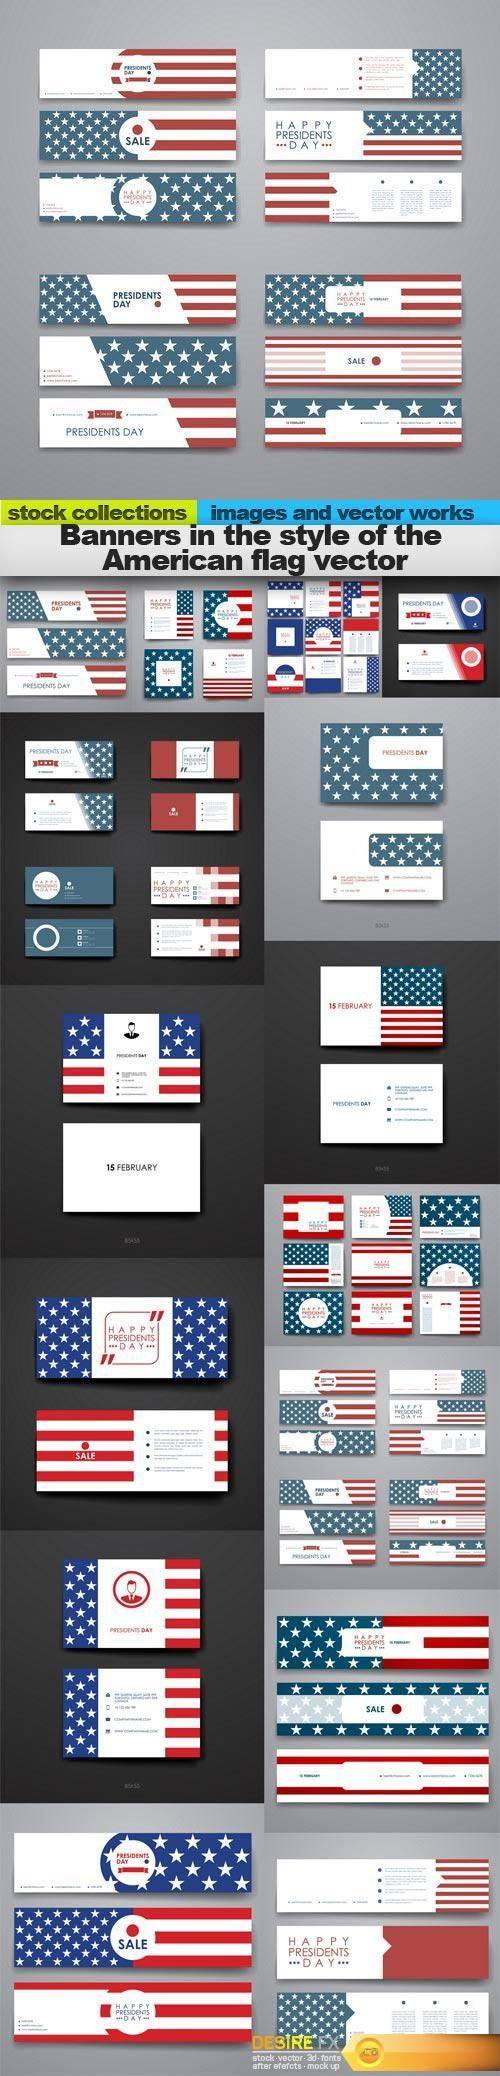 Banners in the style of the American flag vector, 15 x EPS http://www.desirefx.me/banners-in-the-style-of-the-american-flag-vector-15-x-eps/